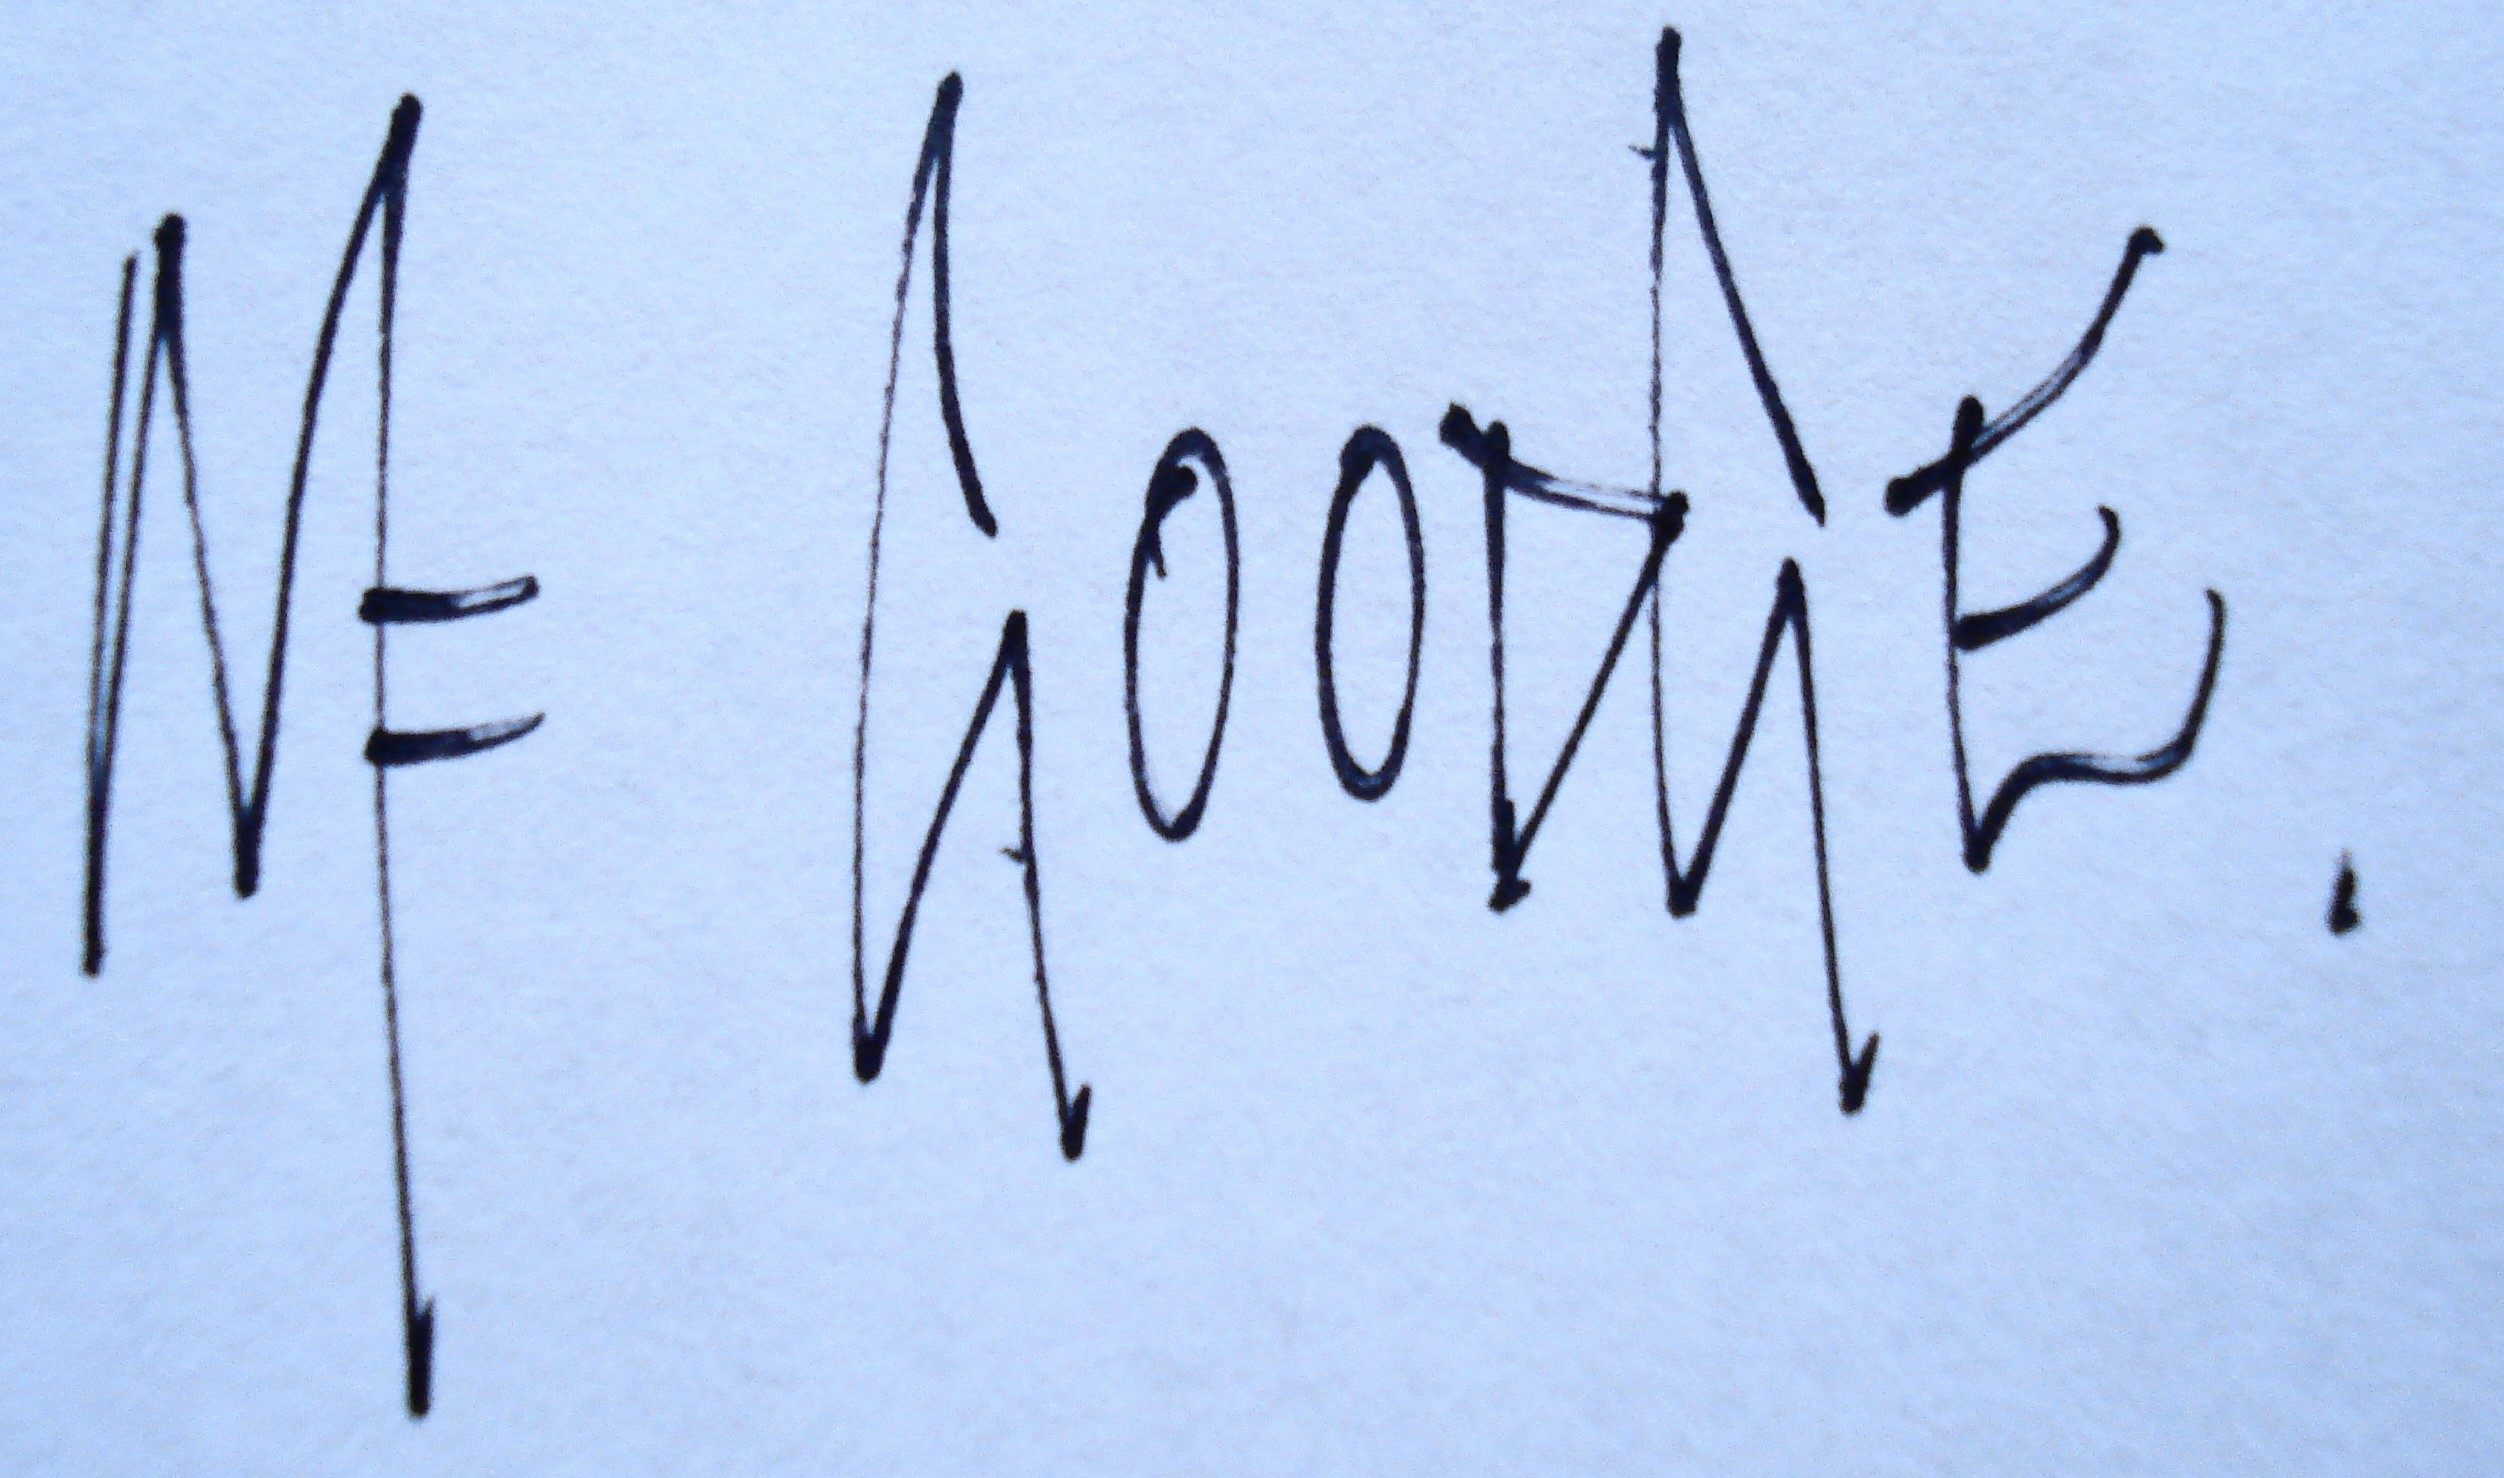 Mike Goodge's Signature